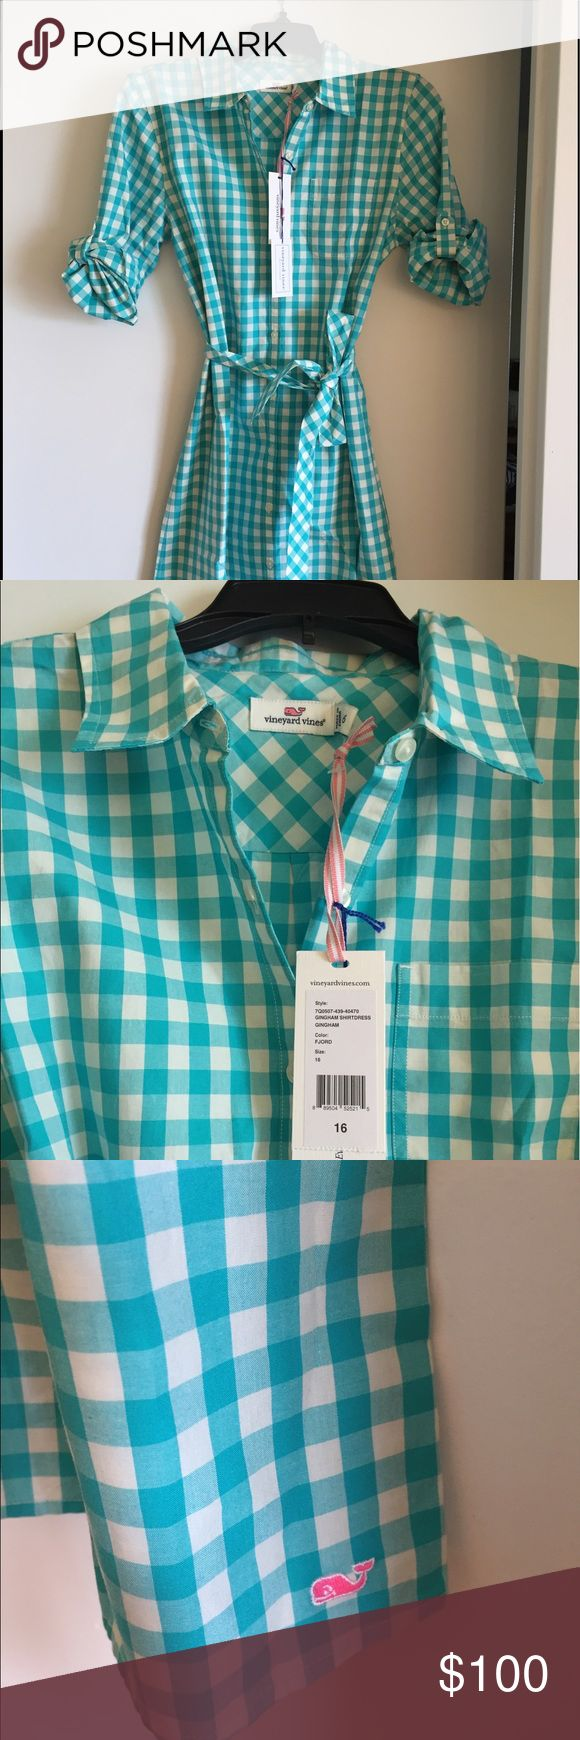 NWT Vineyard Vines Women's Shirtdress SZ 0/2 Brand new Vineyard Vines Gingham Shirtdress in Fjord color. Size 16 in girls But equivalent to women's 0/2. Button up front with removable waist tie. Vineyard Vines Embroidered Whale at hem of dress. 100% cotton. Comes from smoke free/pet free home. Vineyard Vines Dresses